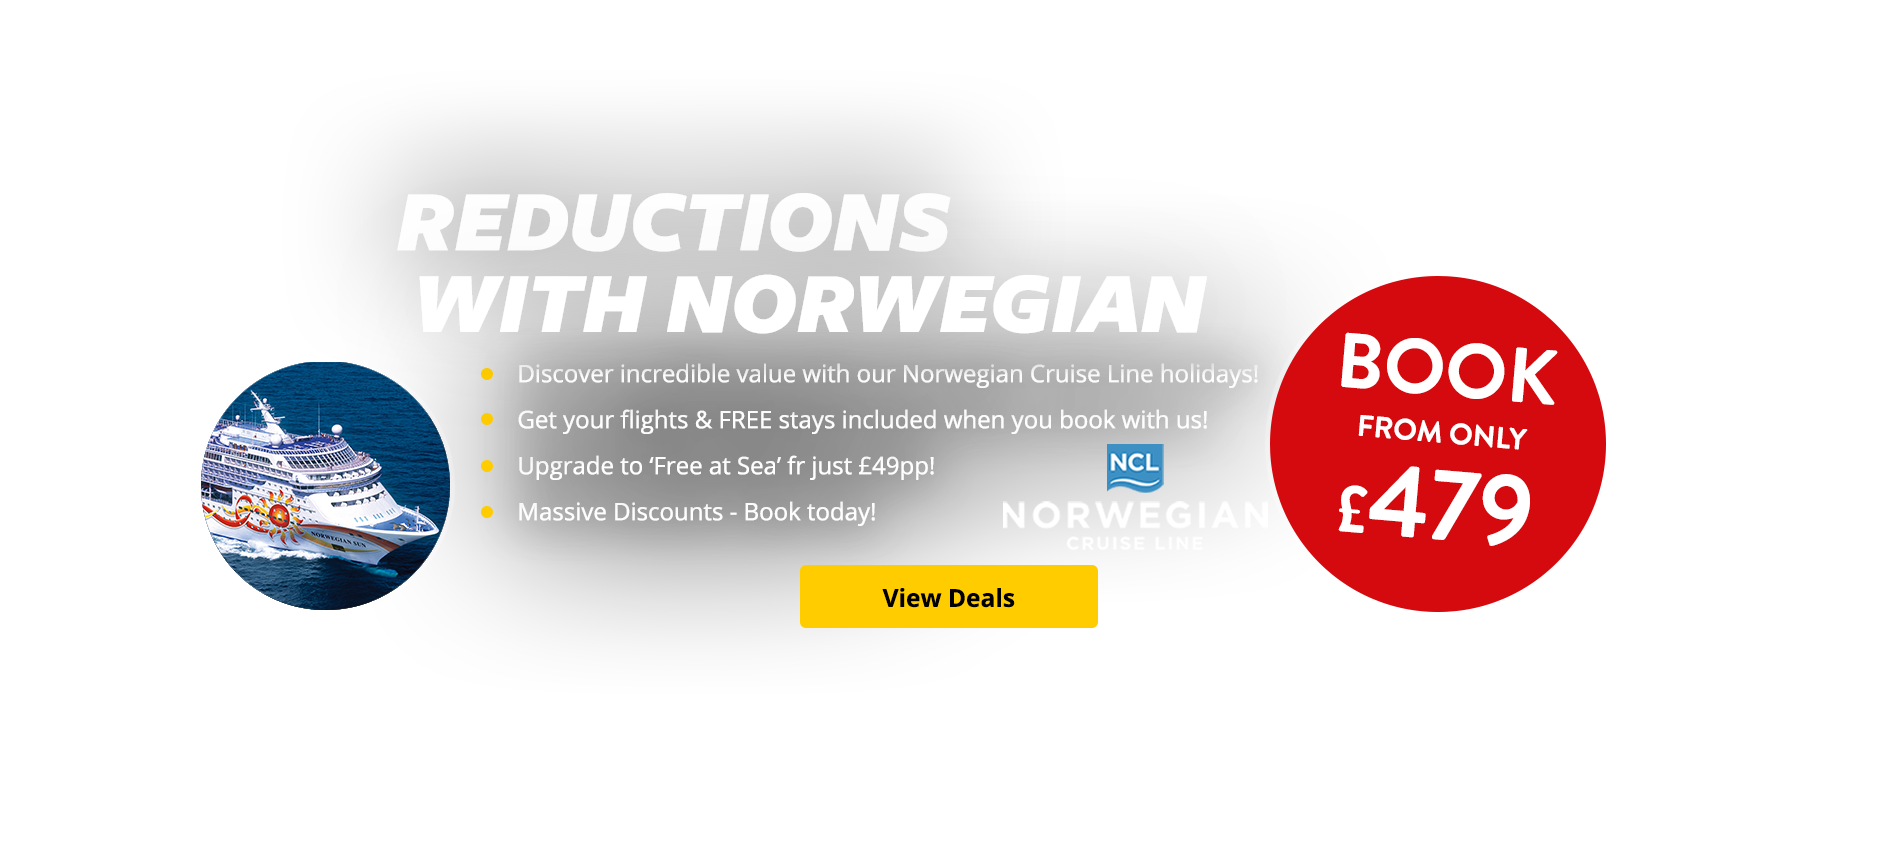 Discover incredible value with our Norwegian Cruise Line holidays! Get your flights & FREE stays included when you book with us! Upgrade to 'Free at Sea' fr just £49pp! Massive Discounts - Book today!